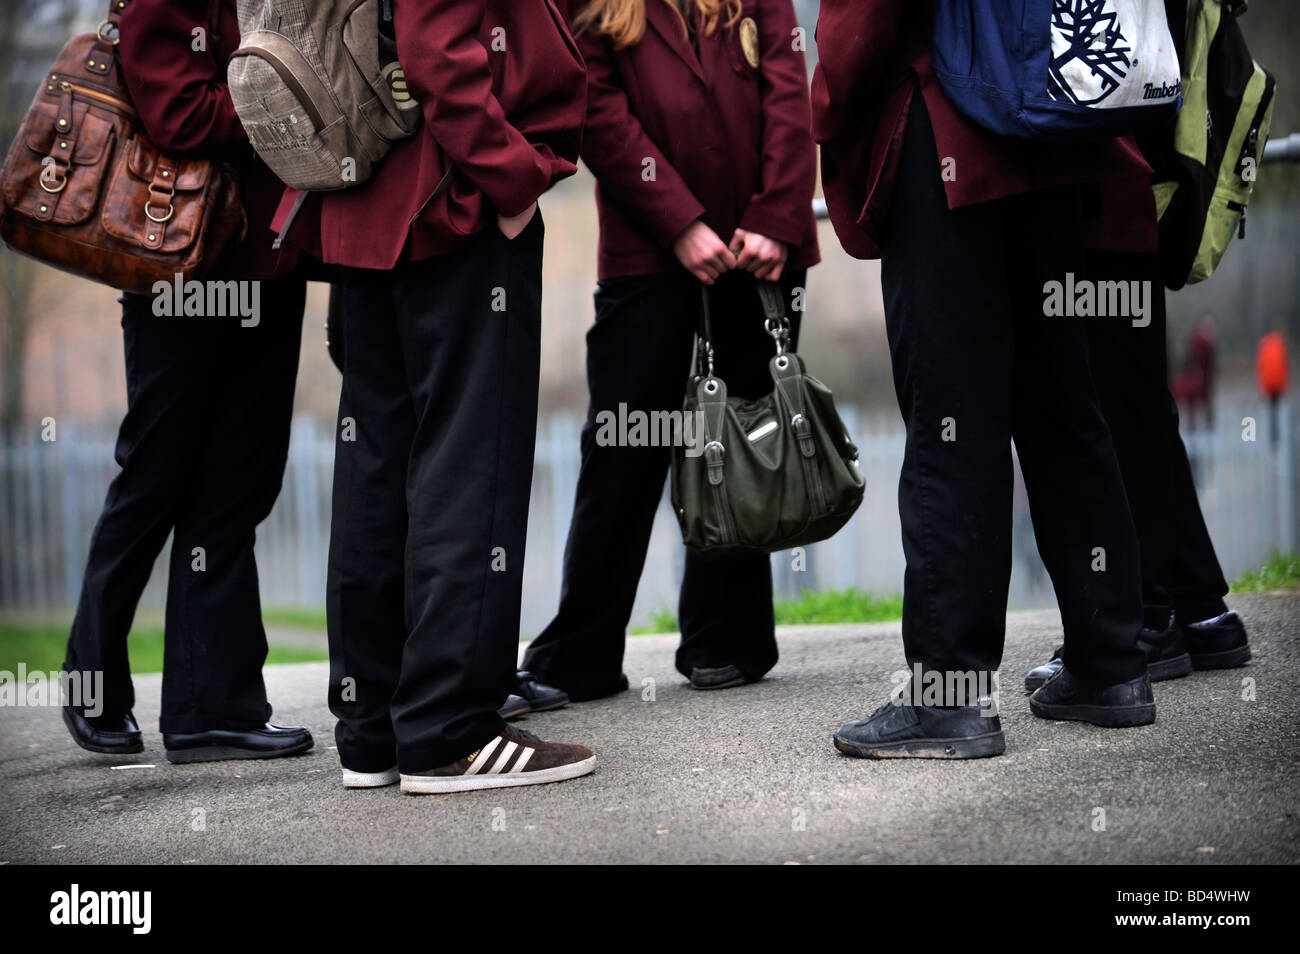 A GROUP OF MIXED SECONDARY SCHOOL CHILDREN IN UNIFORM UK Stock Photo